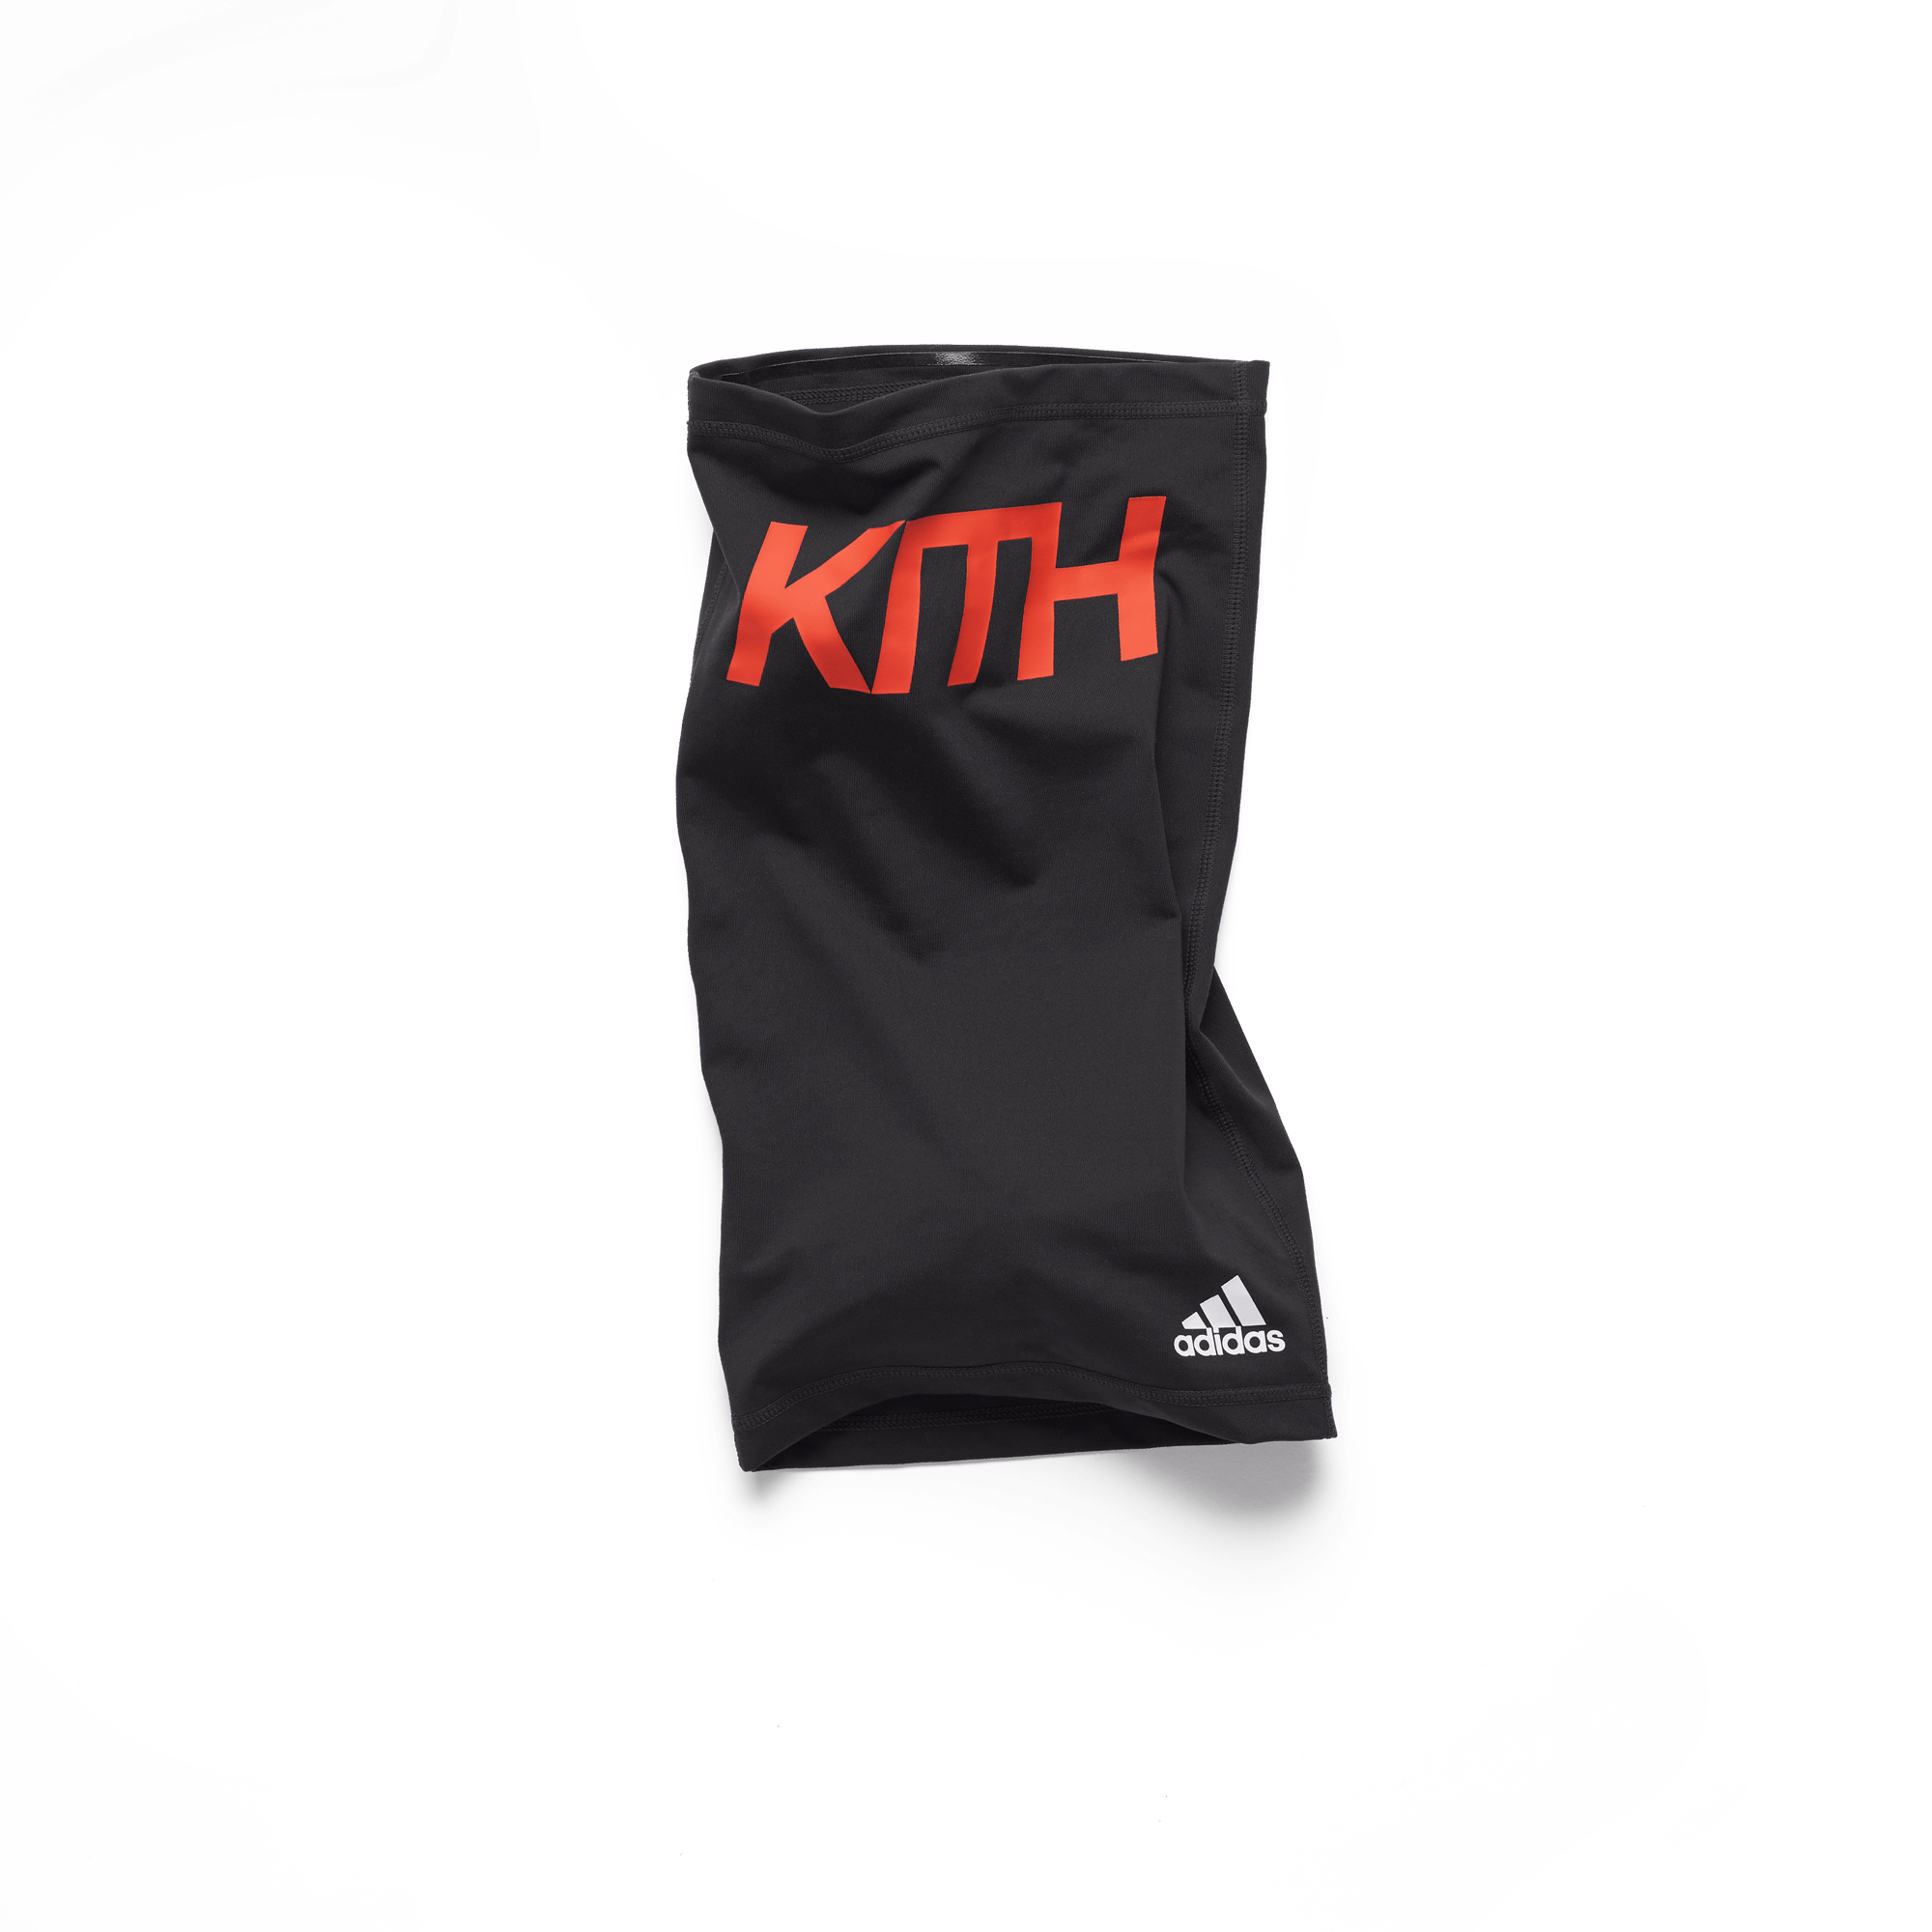 kith_cobra_gaitor_2000px.png